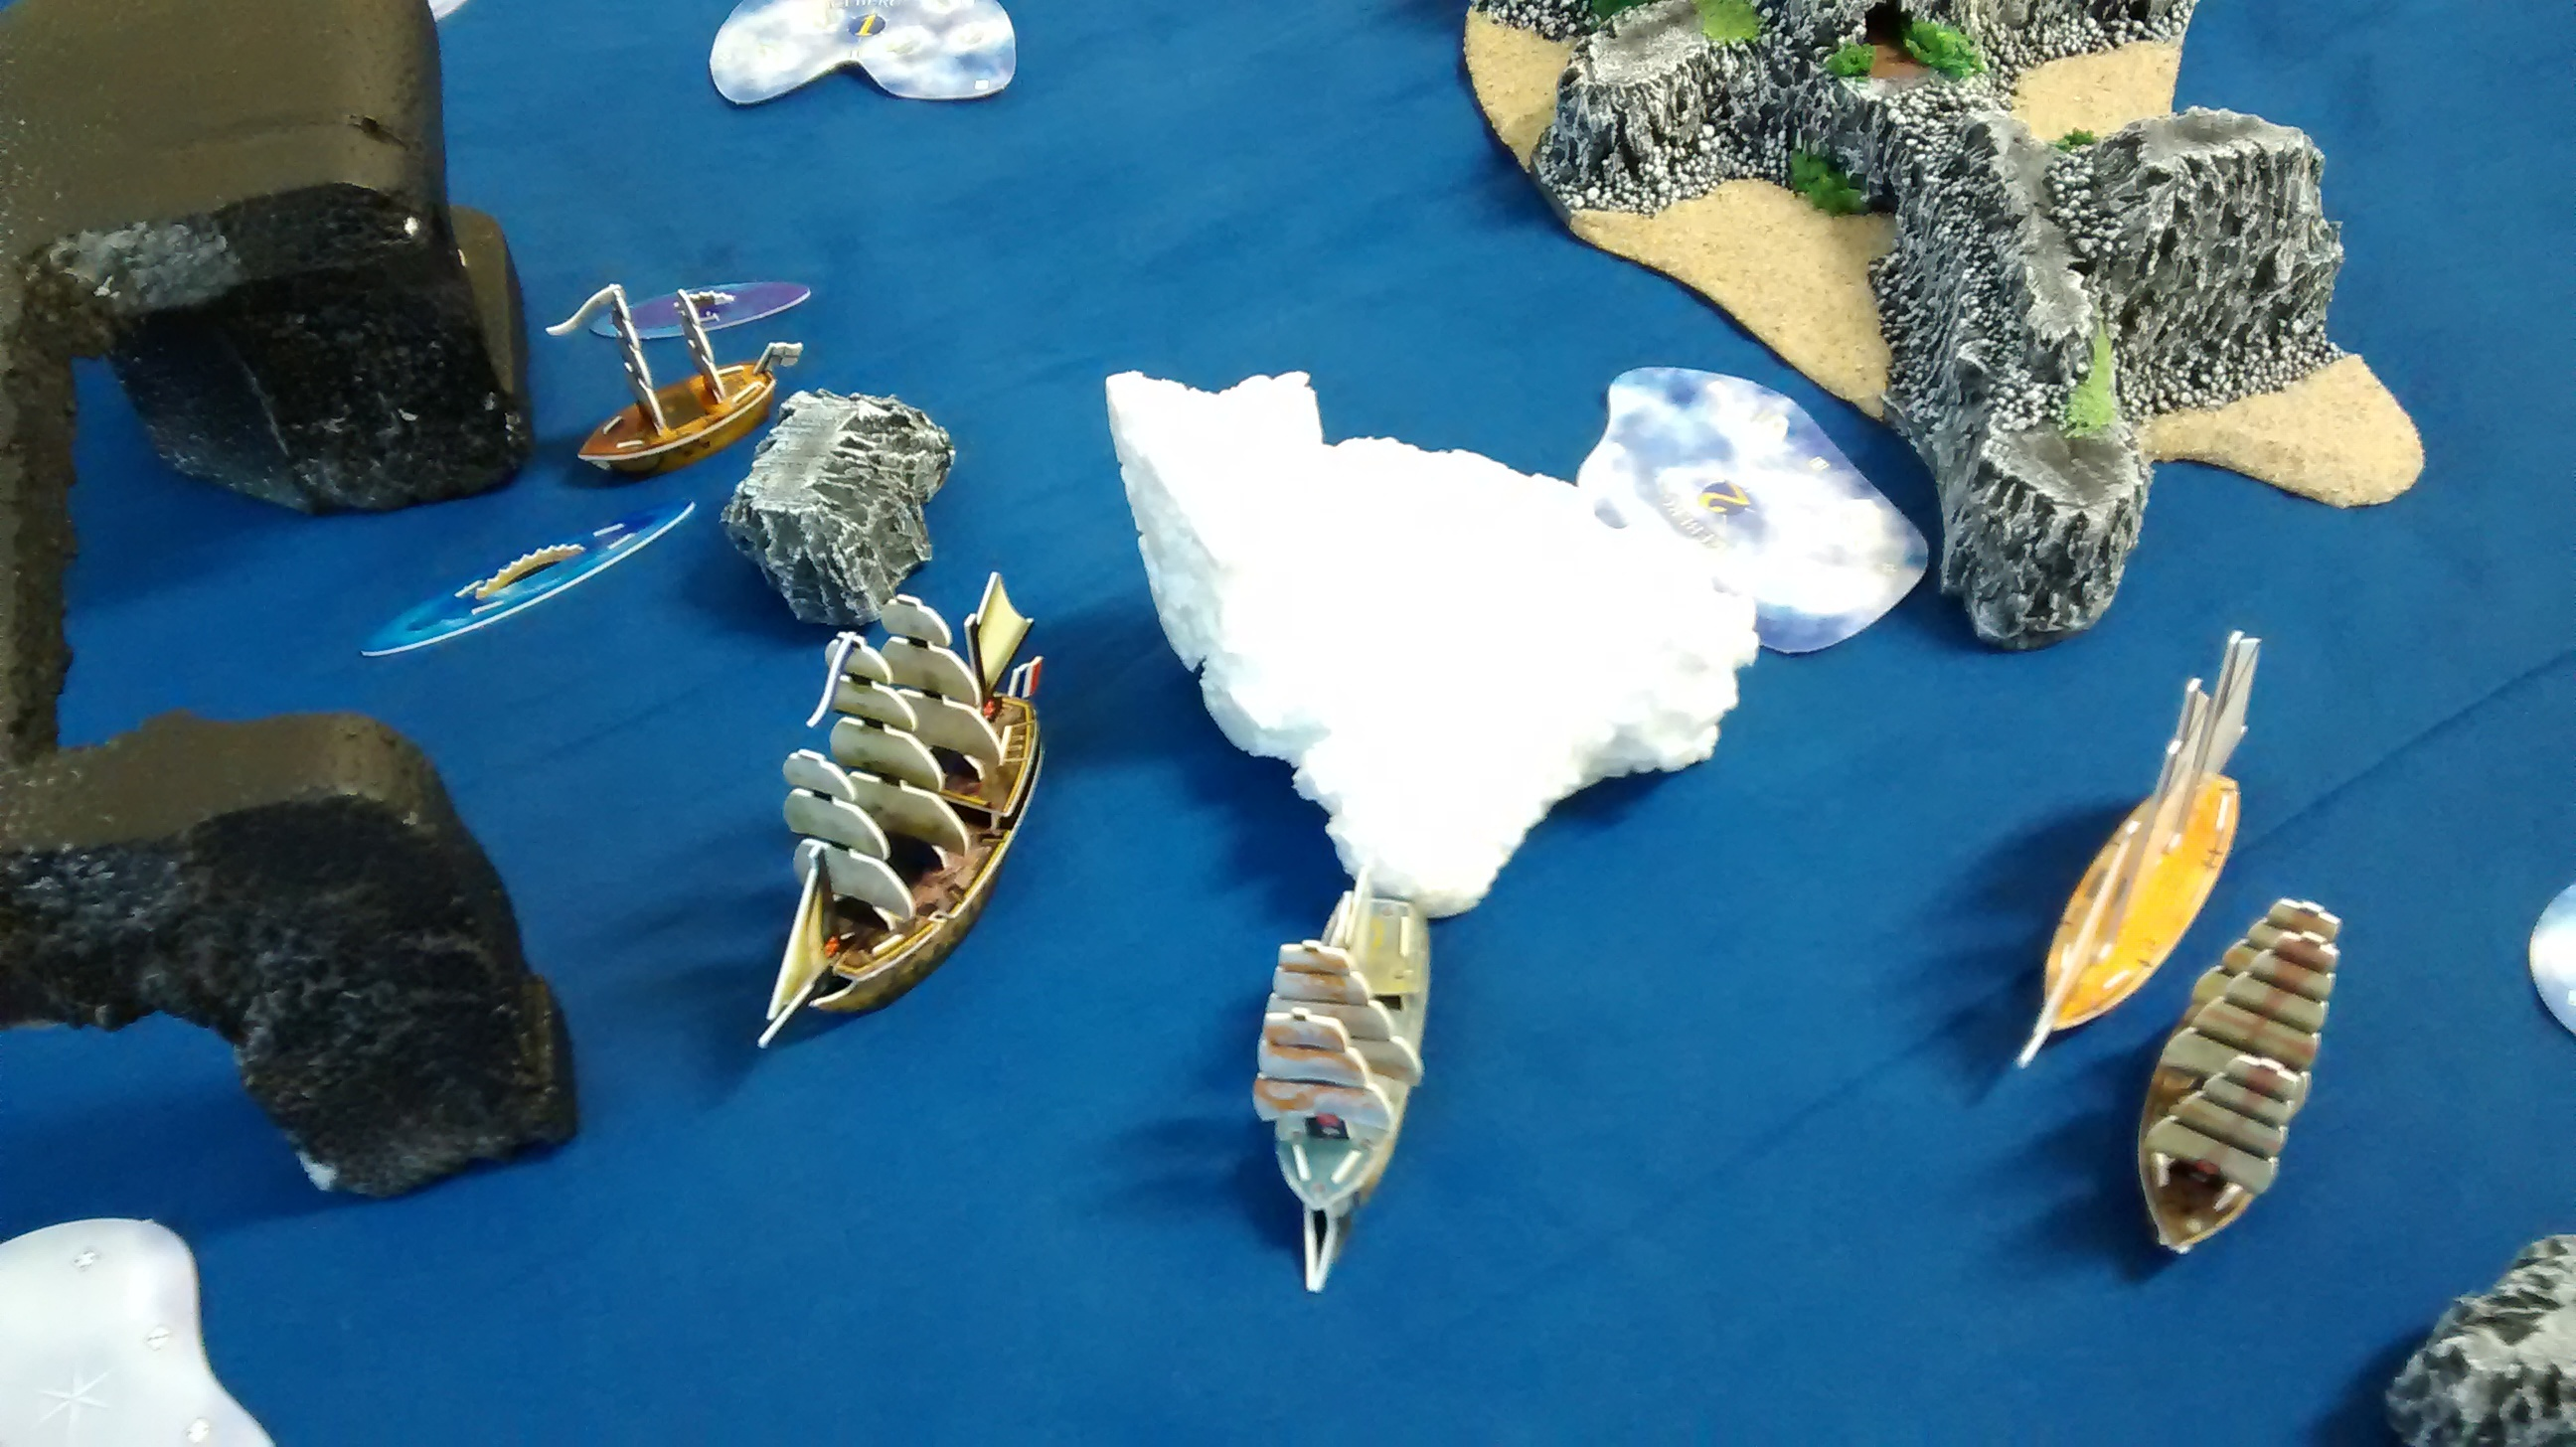 Froide Vengeance towing iceberg